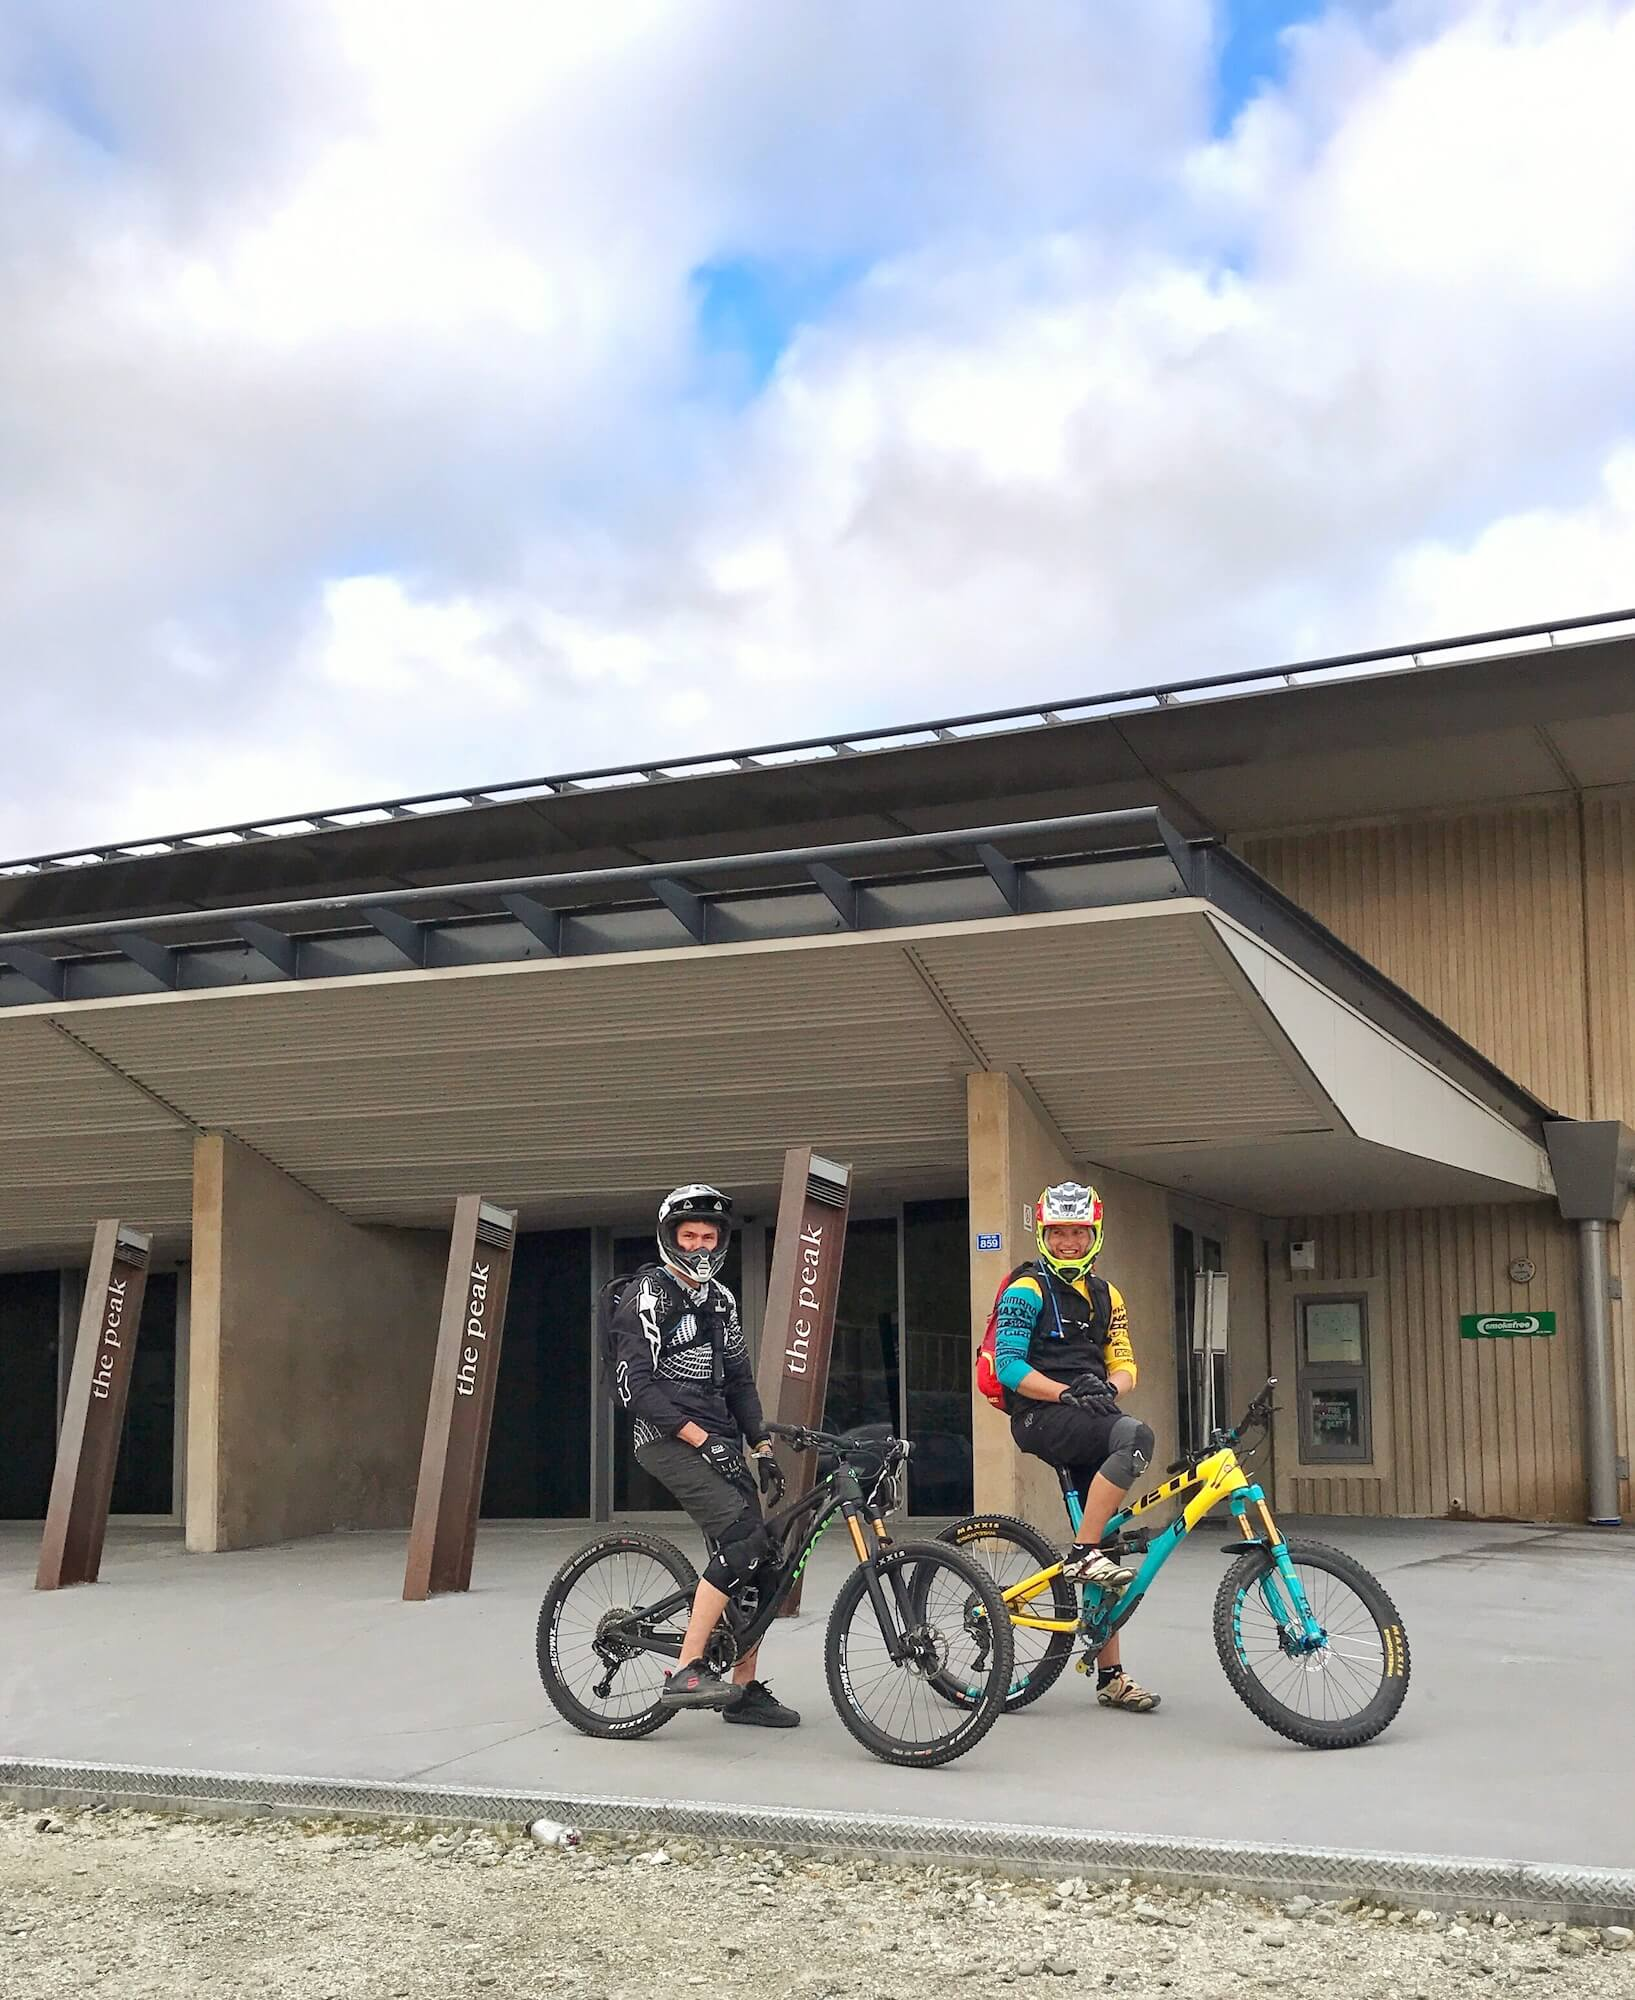 CORONET PEAK SKI RESORT DAY LODGE - BEGINNING OF MANY AWESOME TRAILS, INCLUDING CORONET PEAK XC COURSE, RUDE ROCK AND COROTOWN.